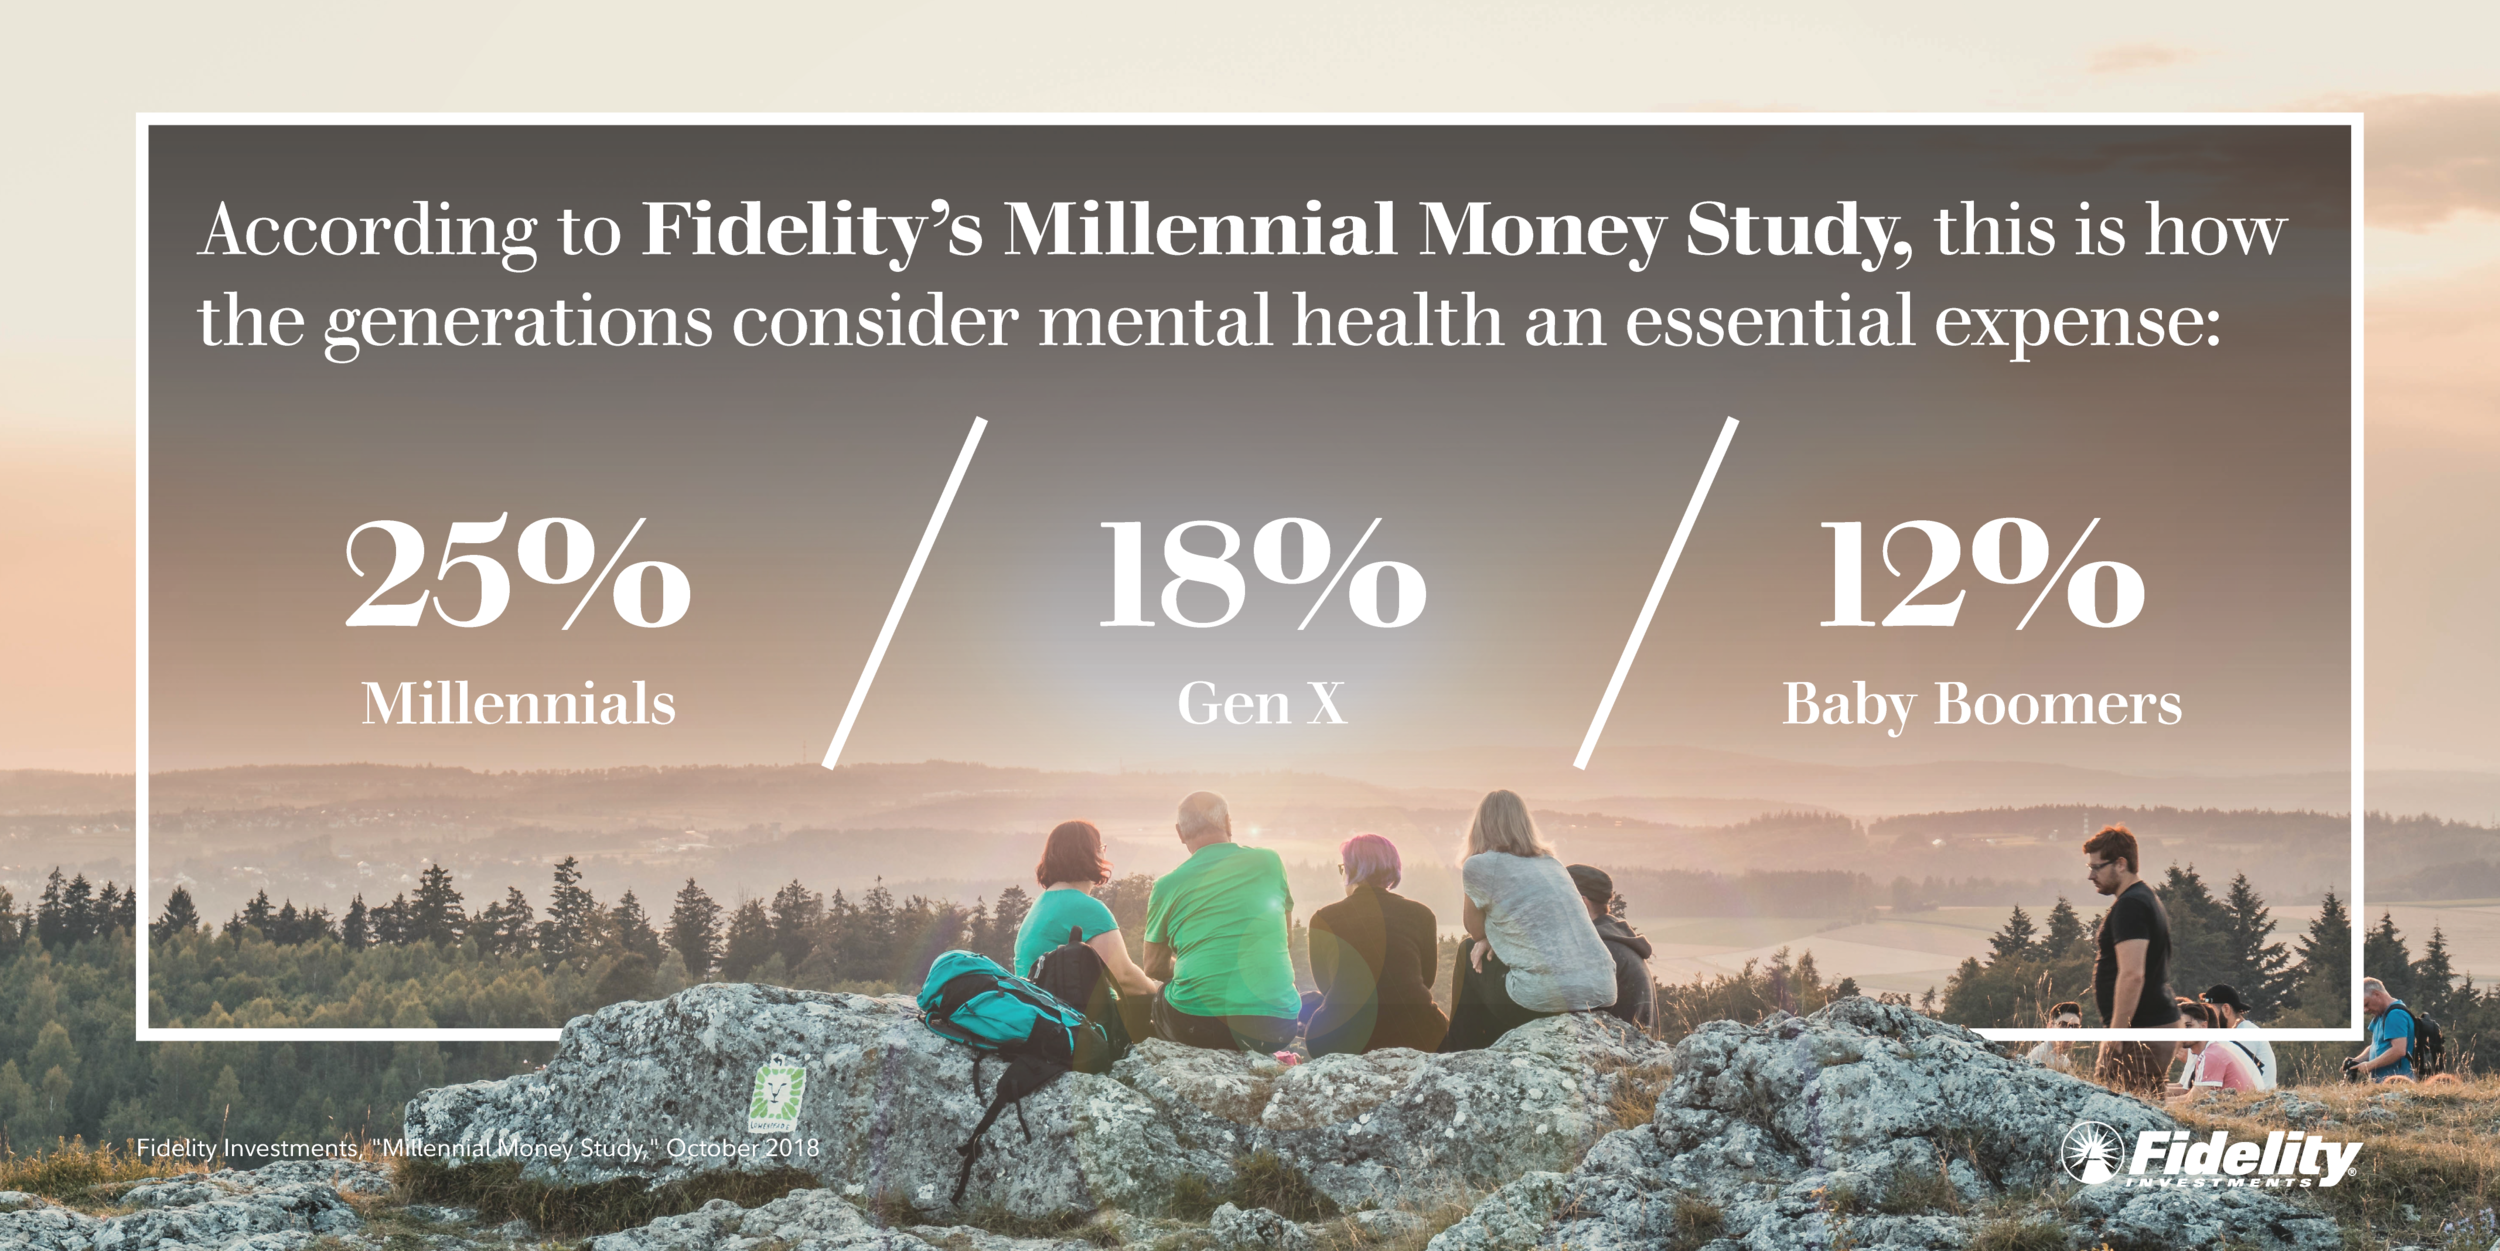 Social Graphic | Fidelity's Millennial Money Study